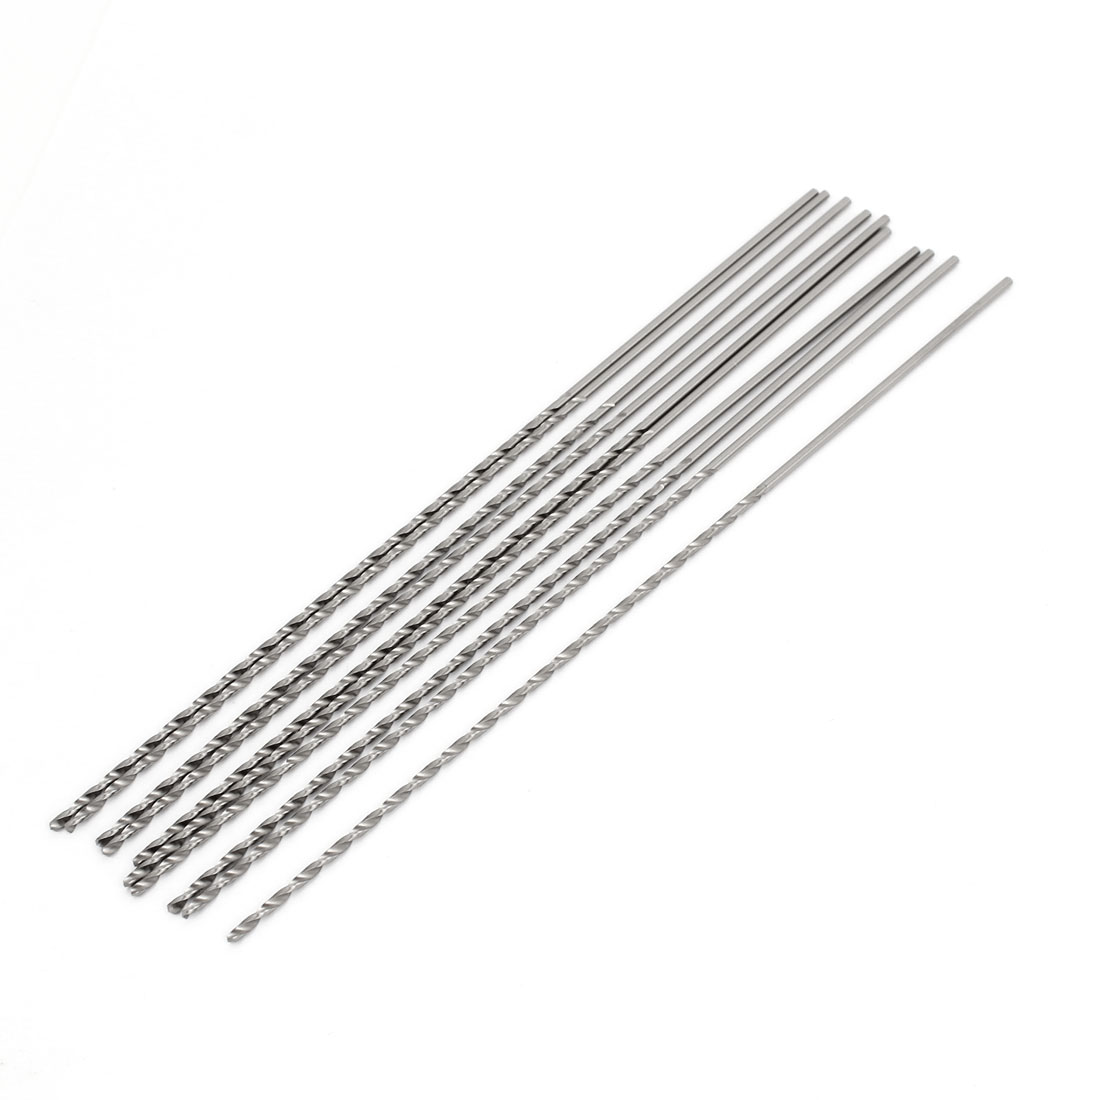 10 Pcs Straight Shank 95mm Flute Long 1.5mm Dia Electric Drill Twist Bit